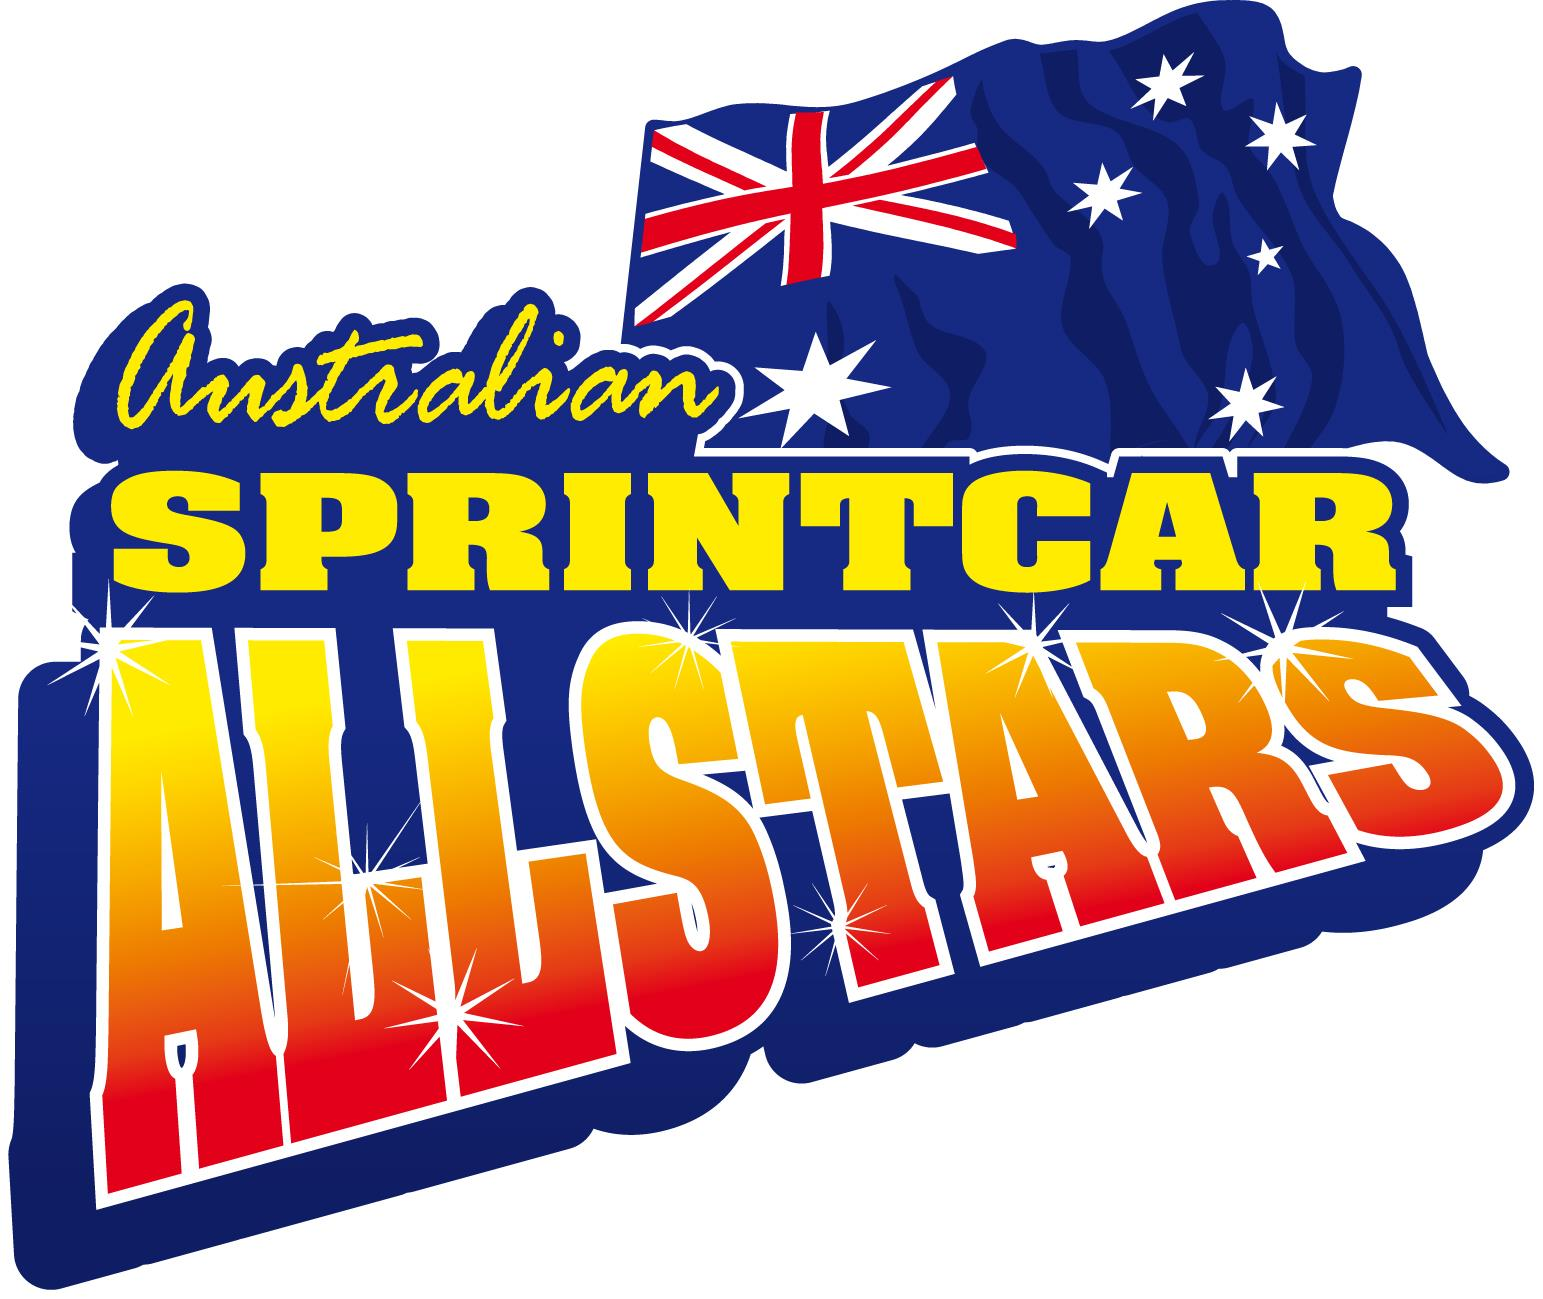 Sprintcar Thunder Series/Sprintcar All Stars